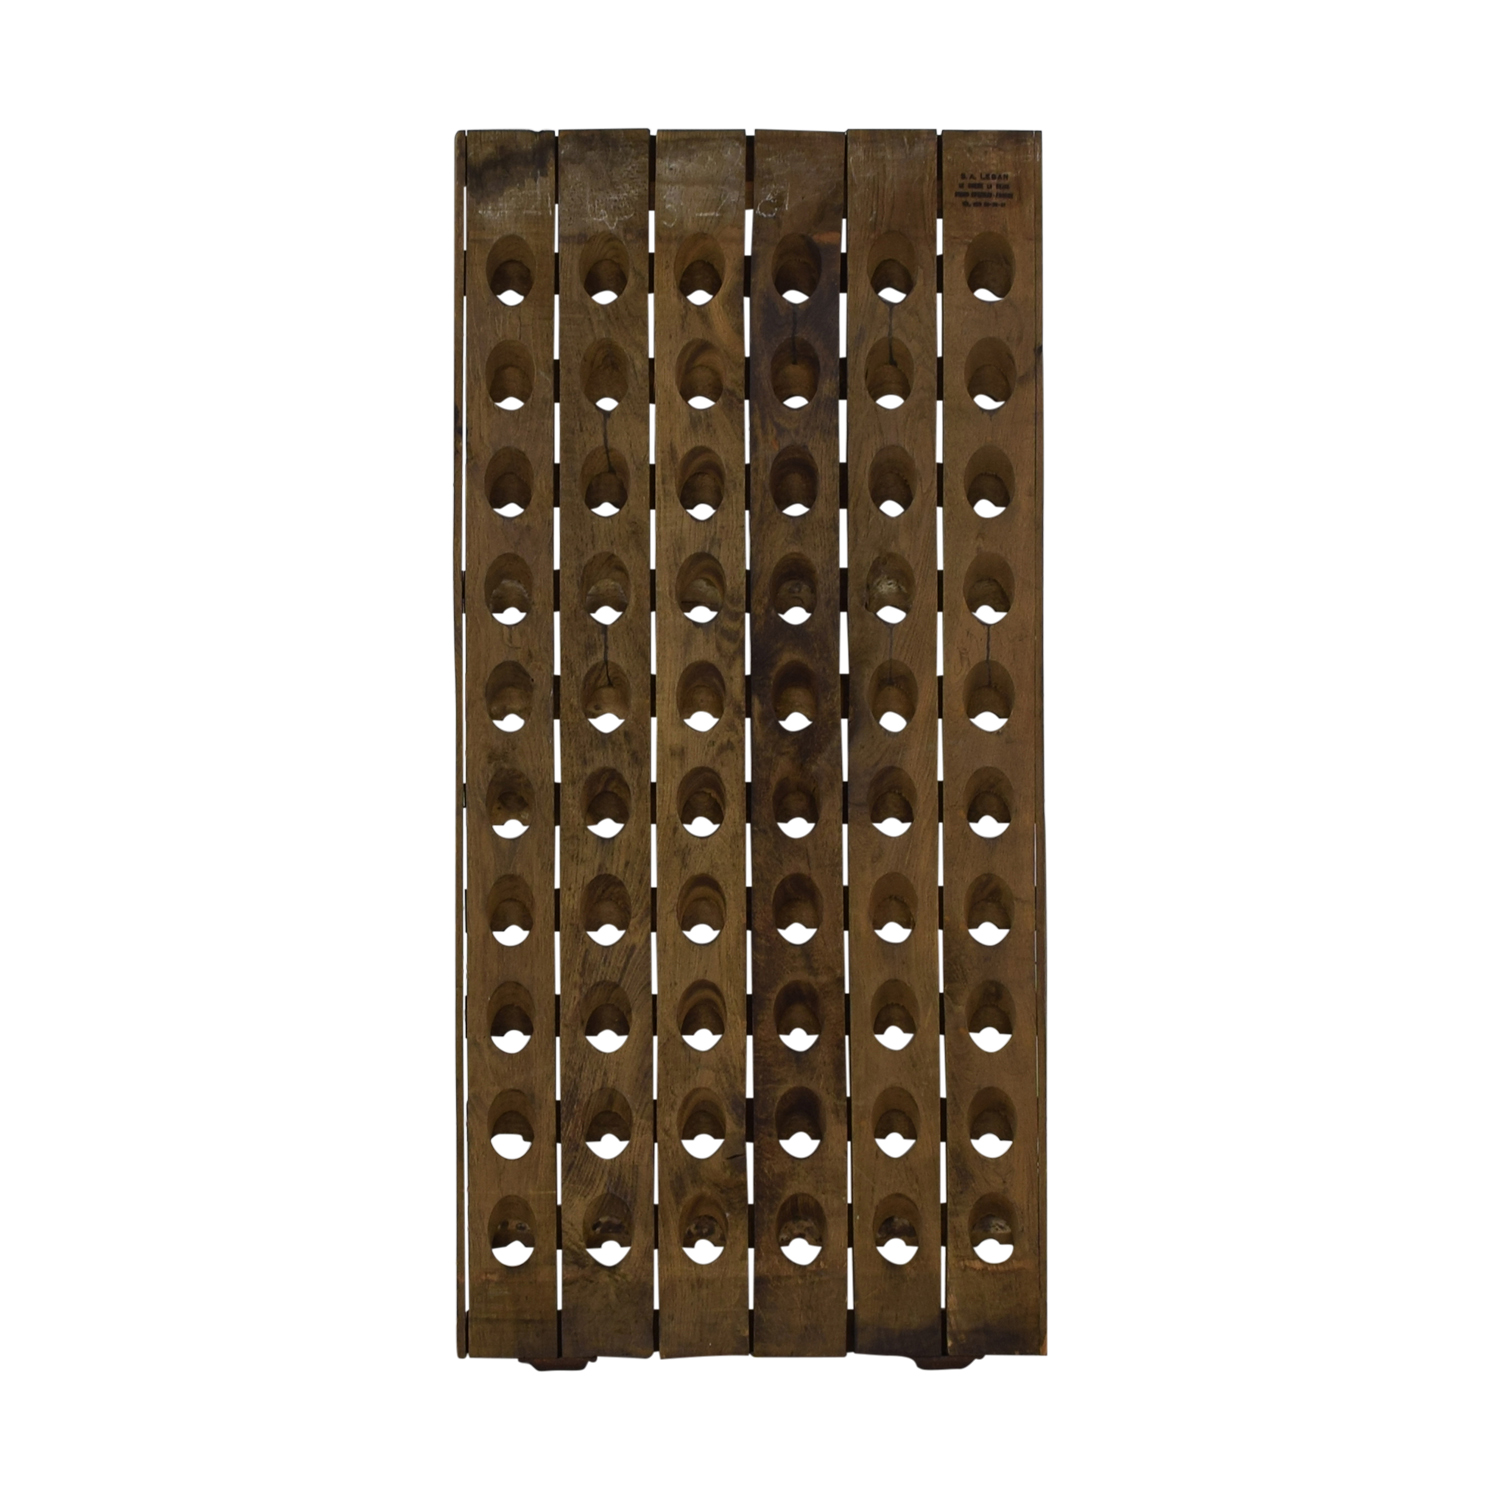 shop Decorative Riddling Wine Rack Sundance Decorative Accents